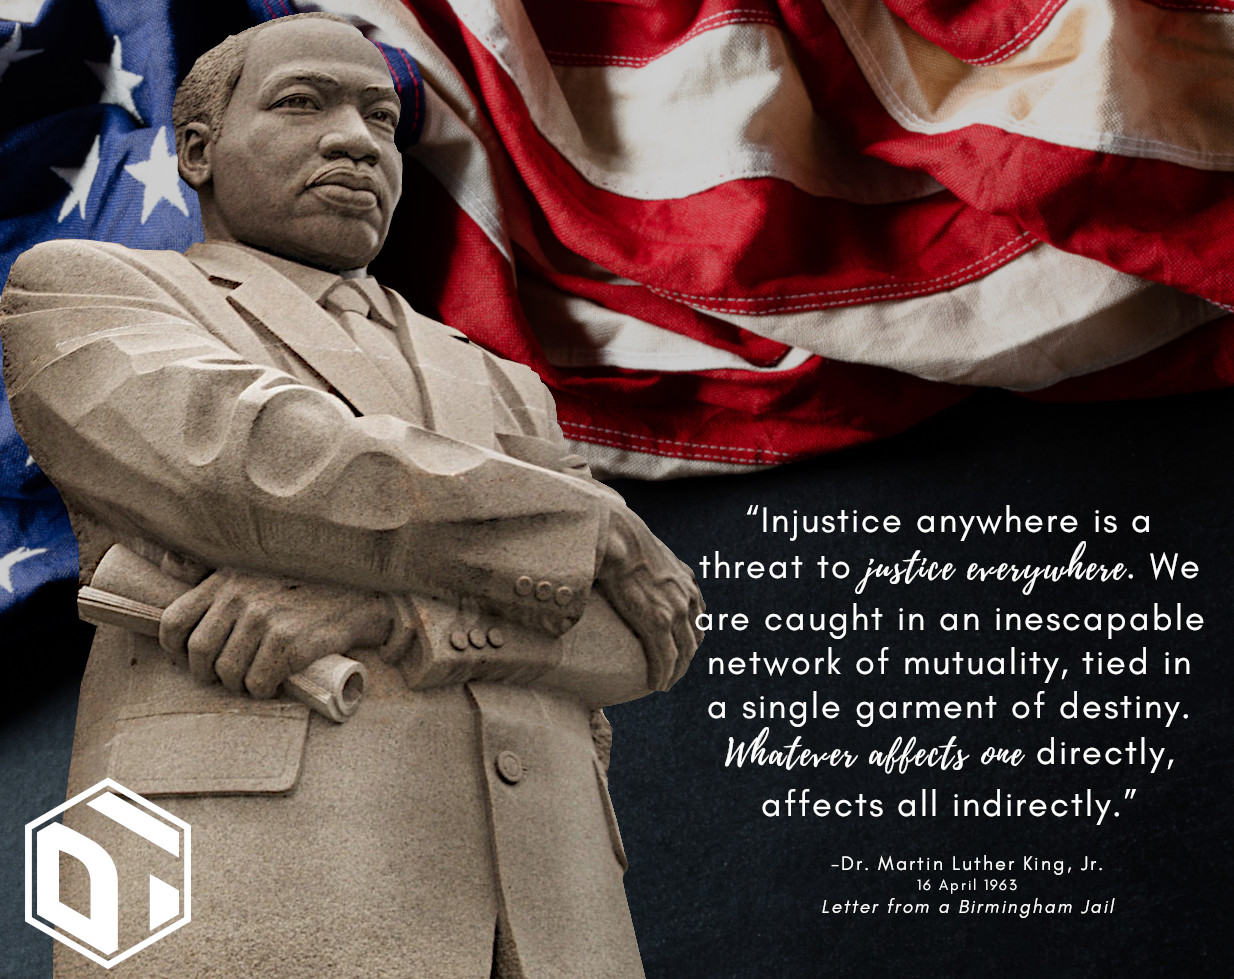 Dupuis Team Honors Dr. Martin Luther King, Jr.